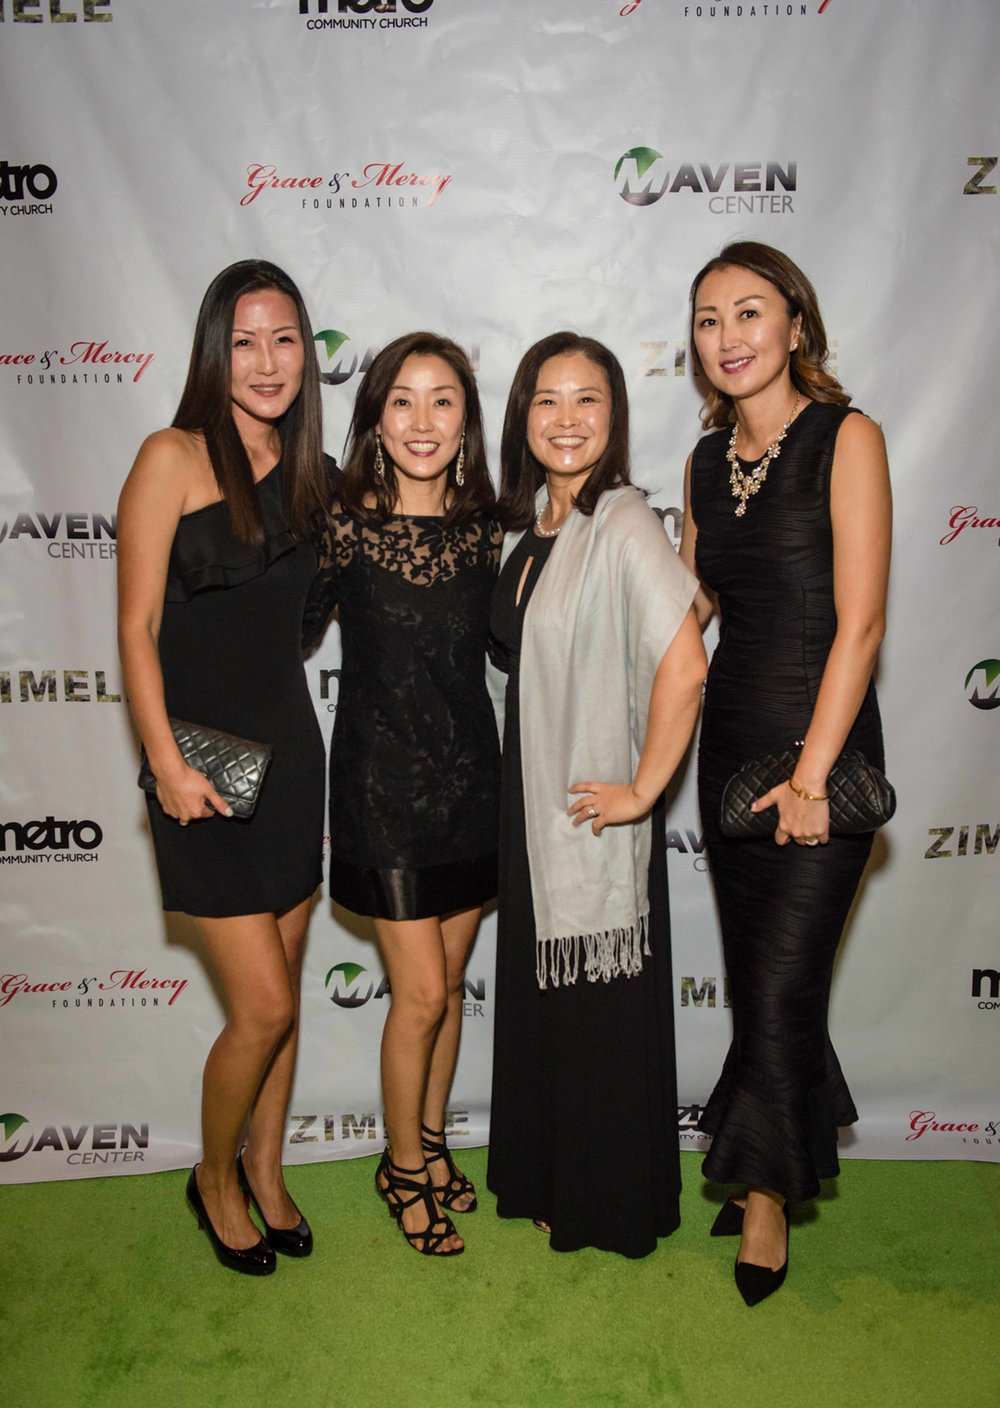 2017-10-21 Zimele USA 6th Annual Gala - Maritime Parc - Jersey City NJ_0065.jpg